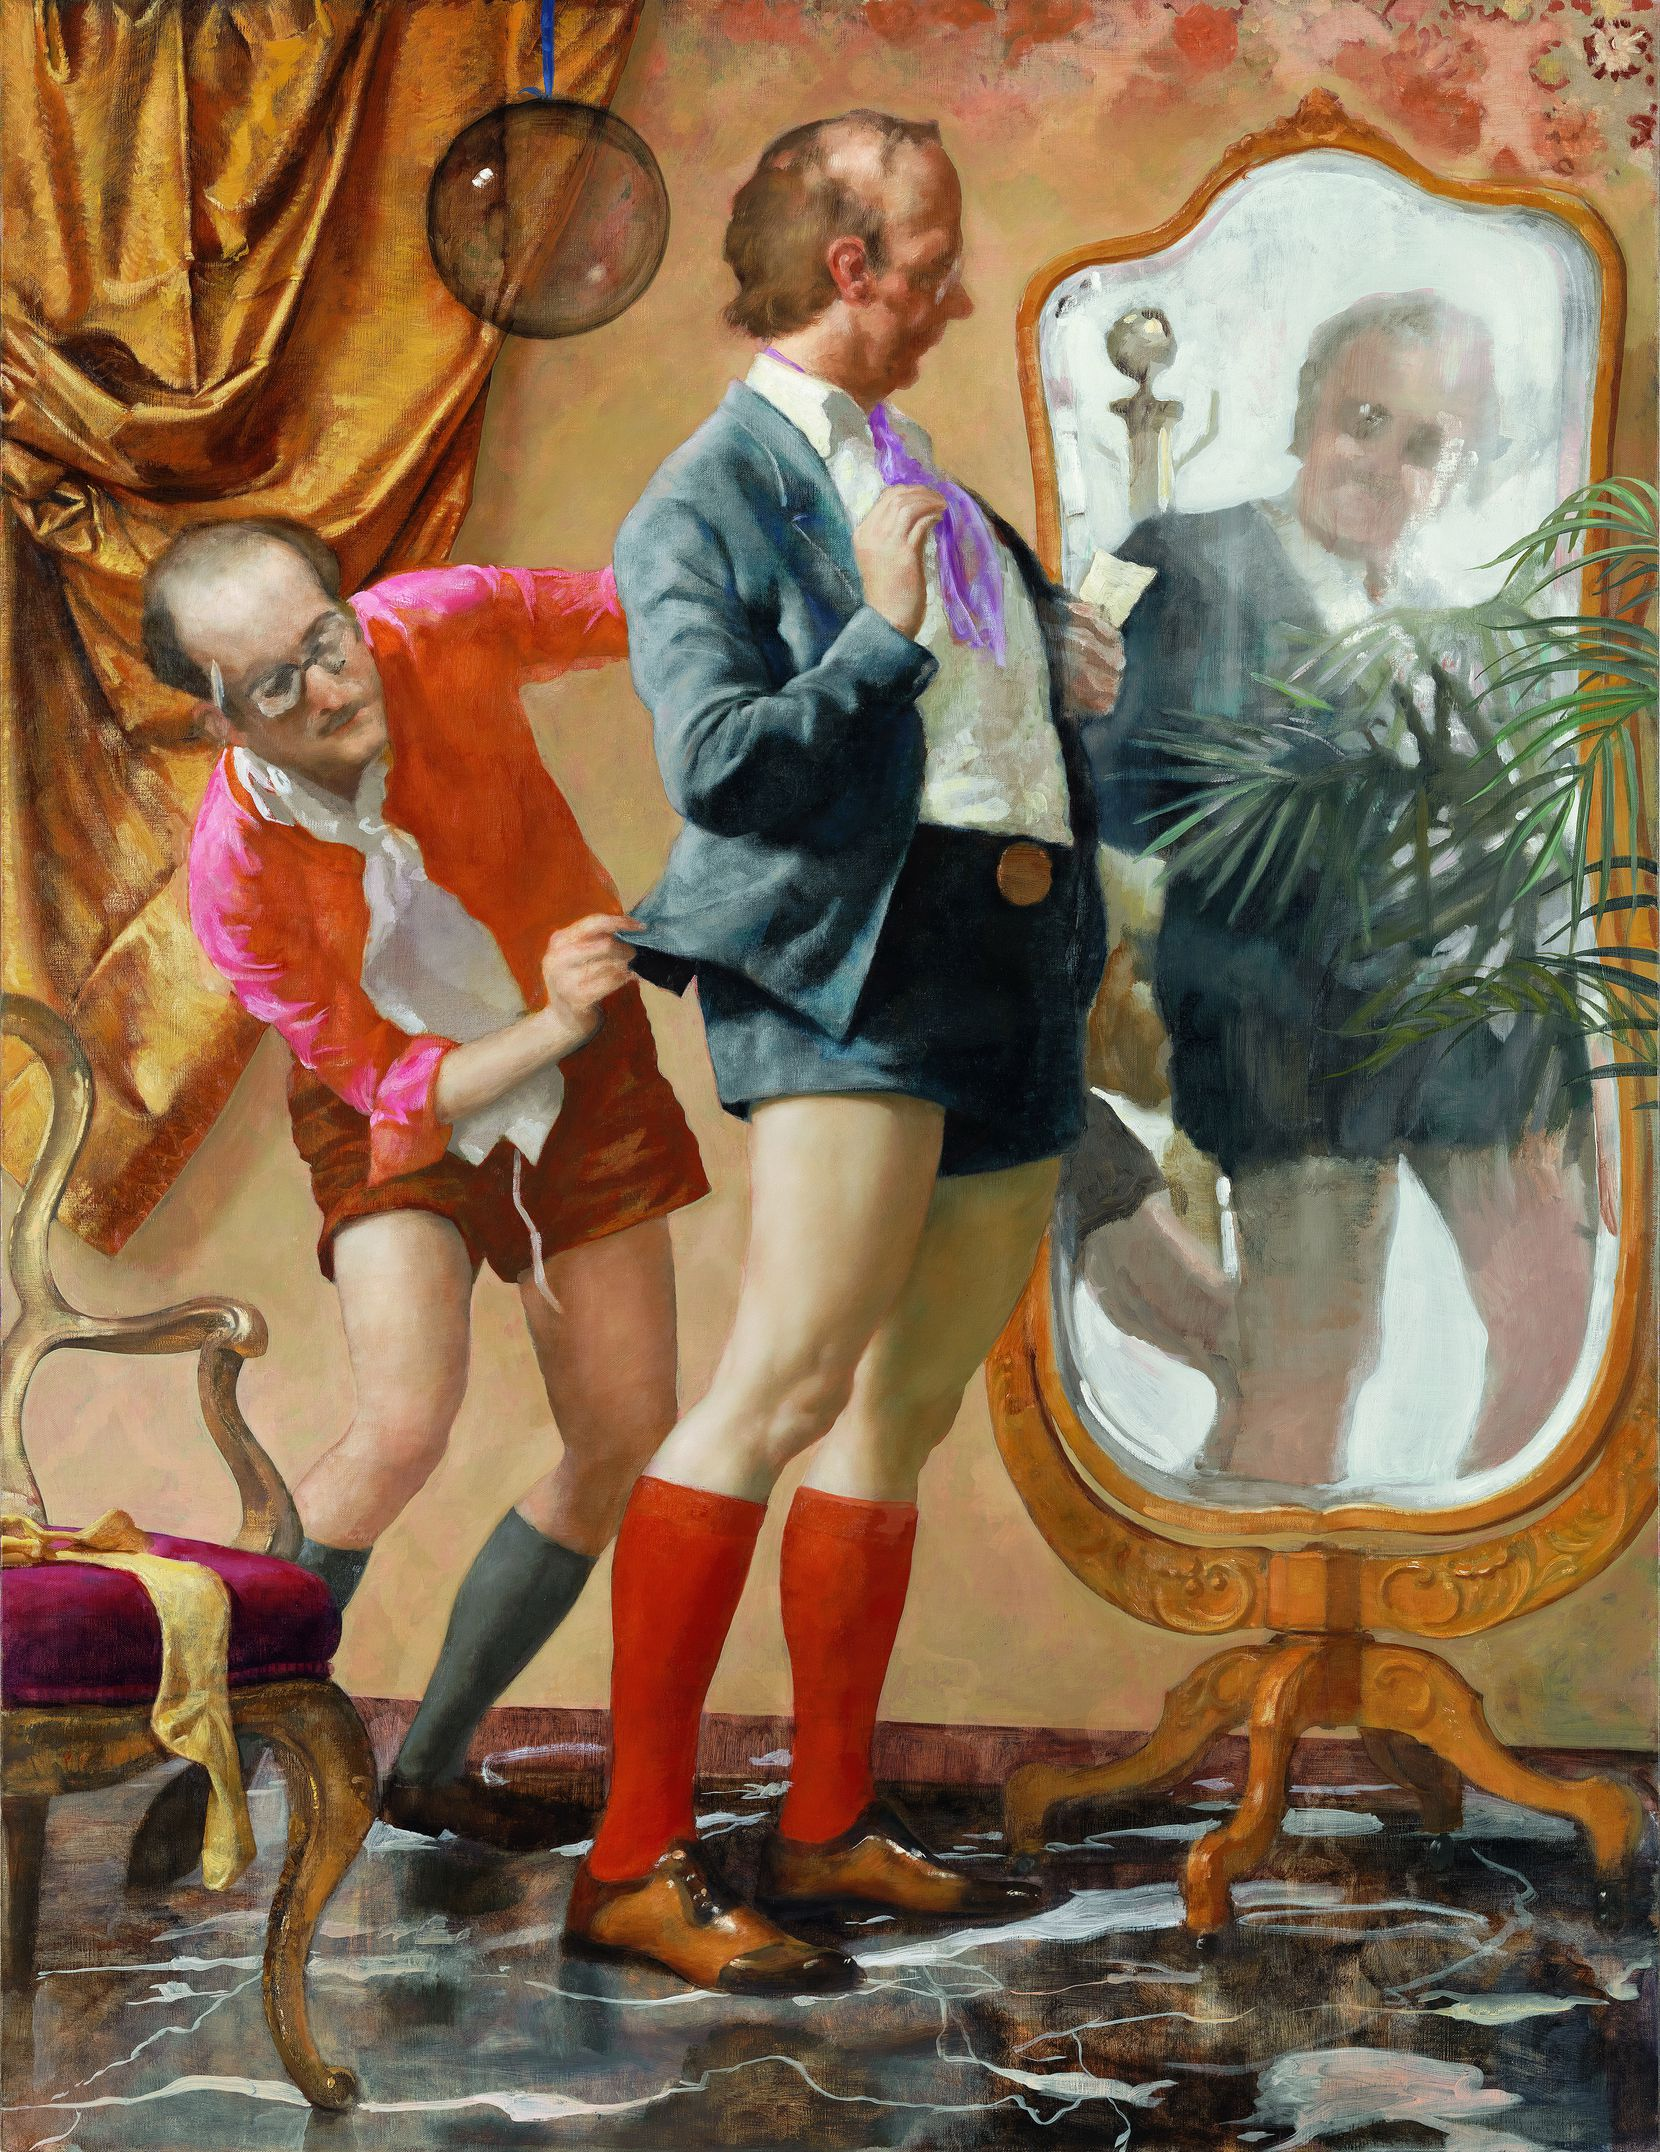 """John Currin's """"Hot Pants"""" from 2010 plays with views of the male image. (Oil on canvas, 78 x 60 inches.) This work is on display in the 2019 exhibition """"My Life as a Man"""" at the Dallas Contemporary."""